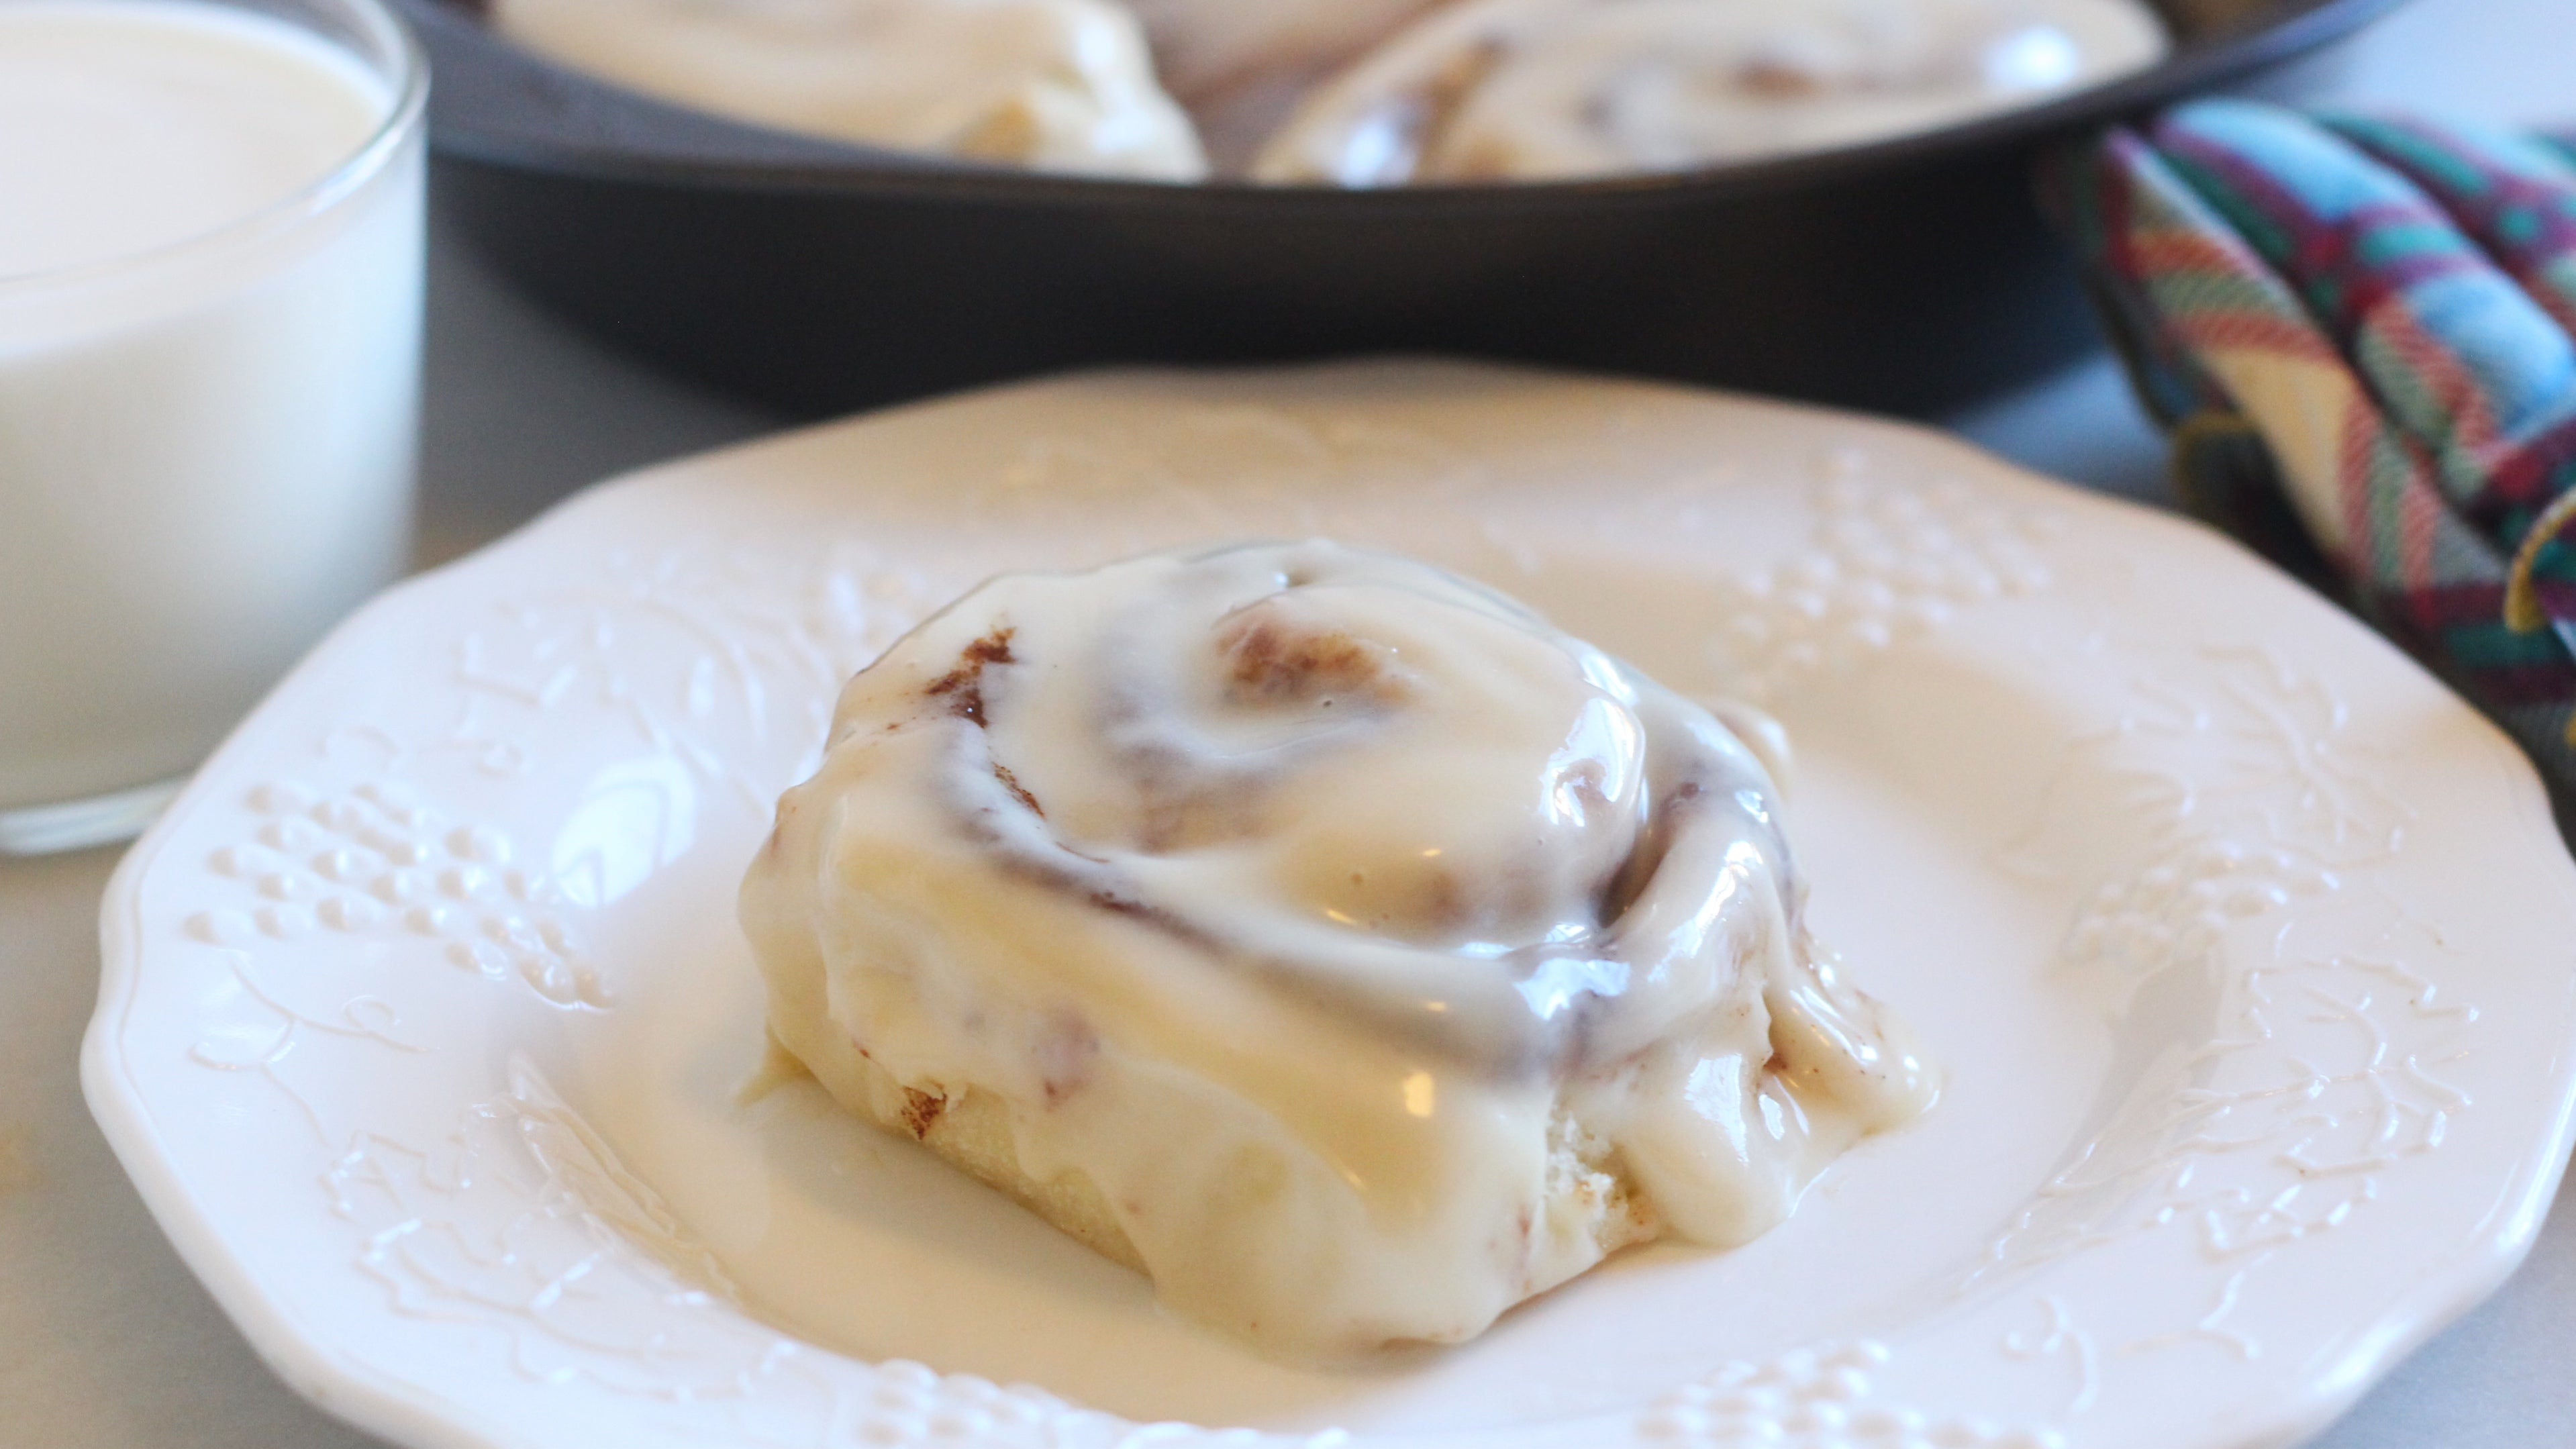 How To Make Your Cinnamon Rolls Taste Like Cinnabon's